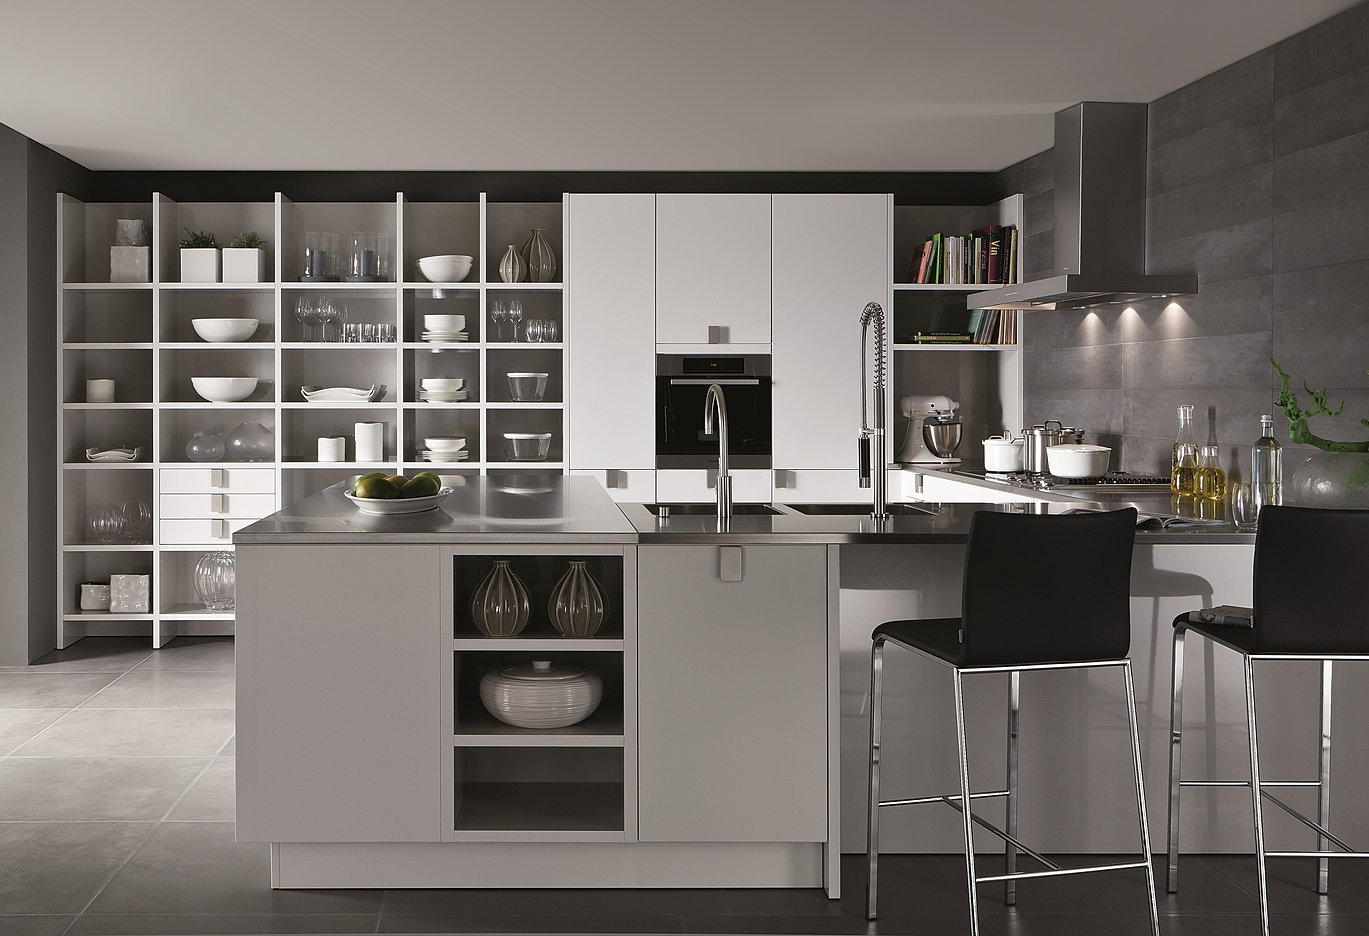 konstsiematic kitchen designer Modern kitchen designer